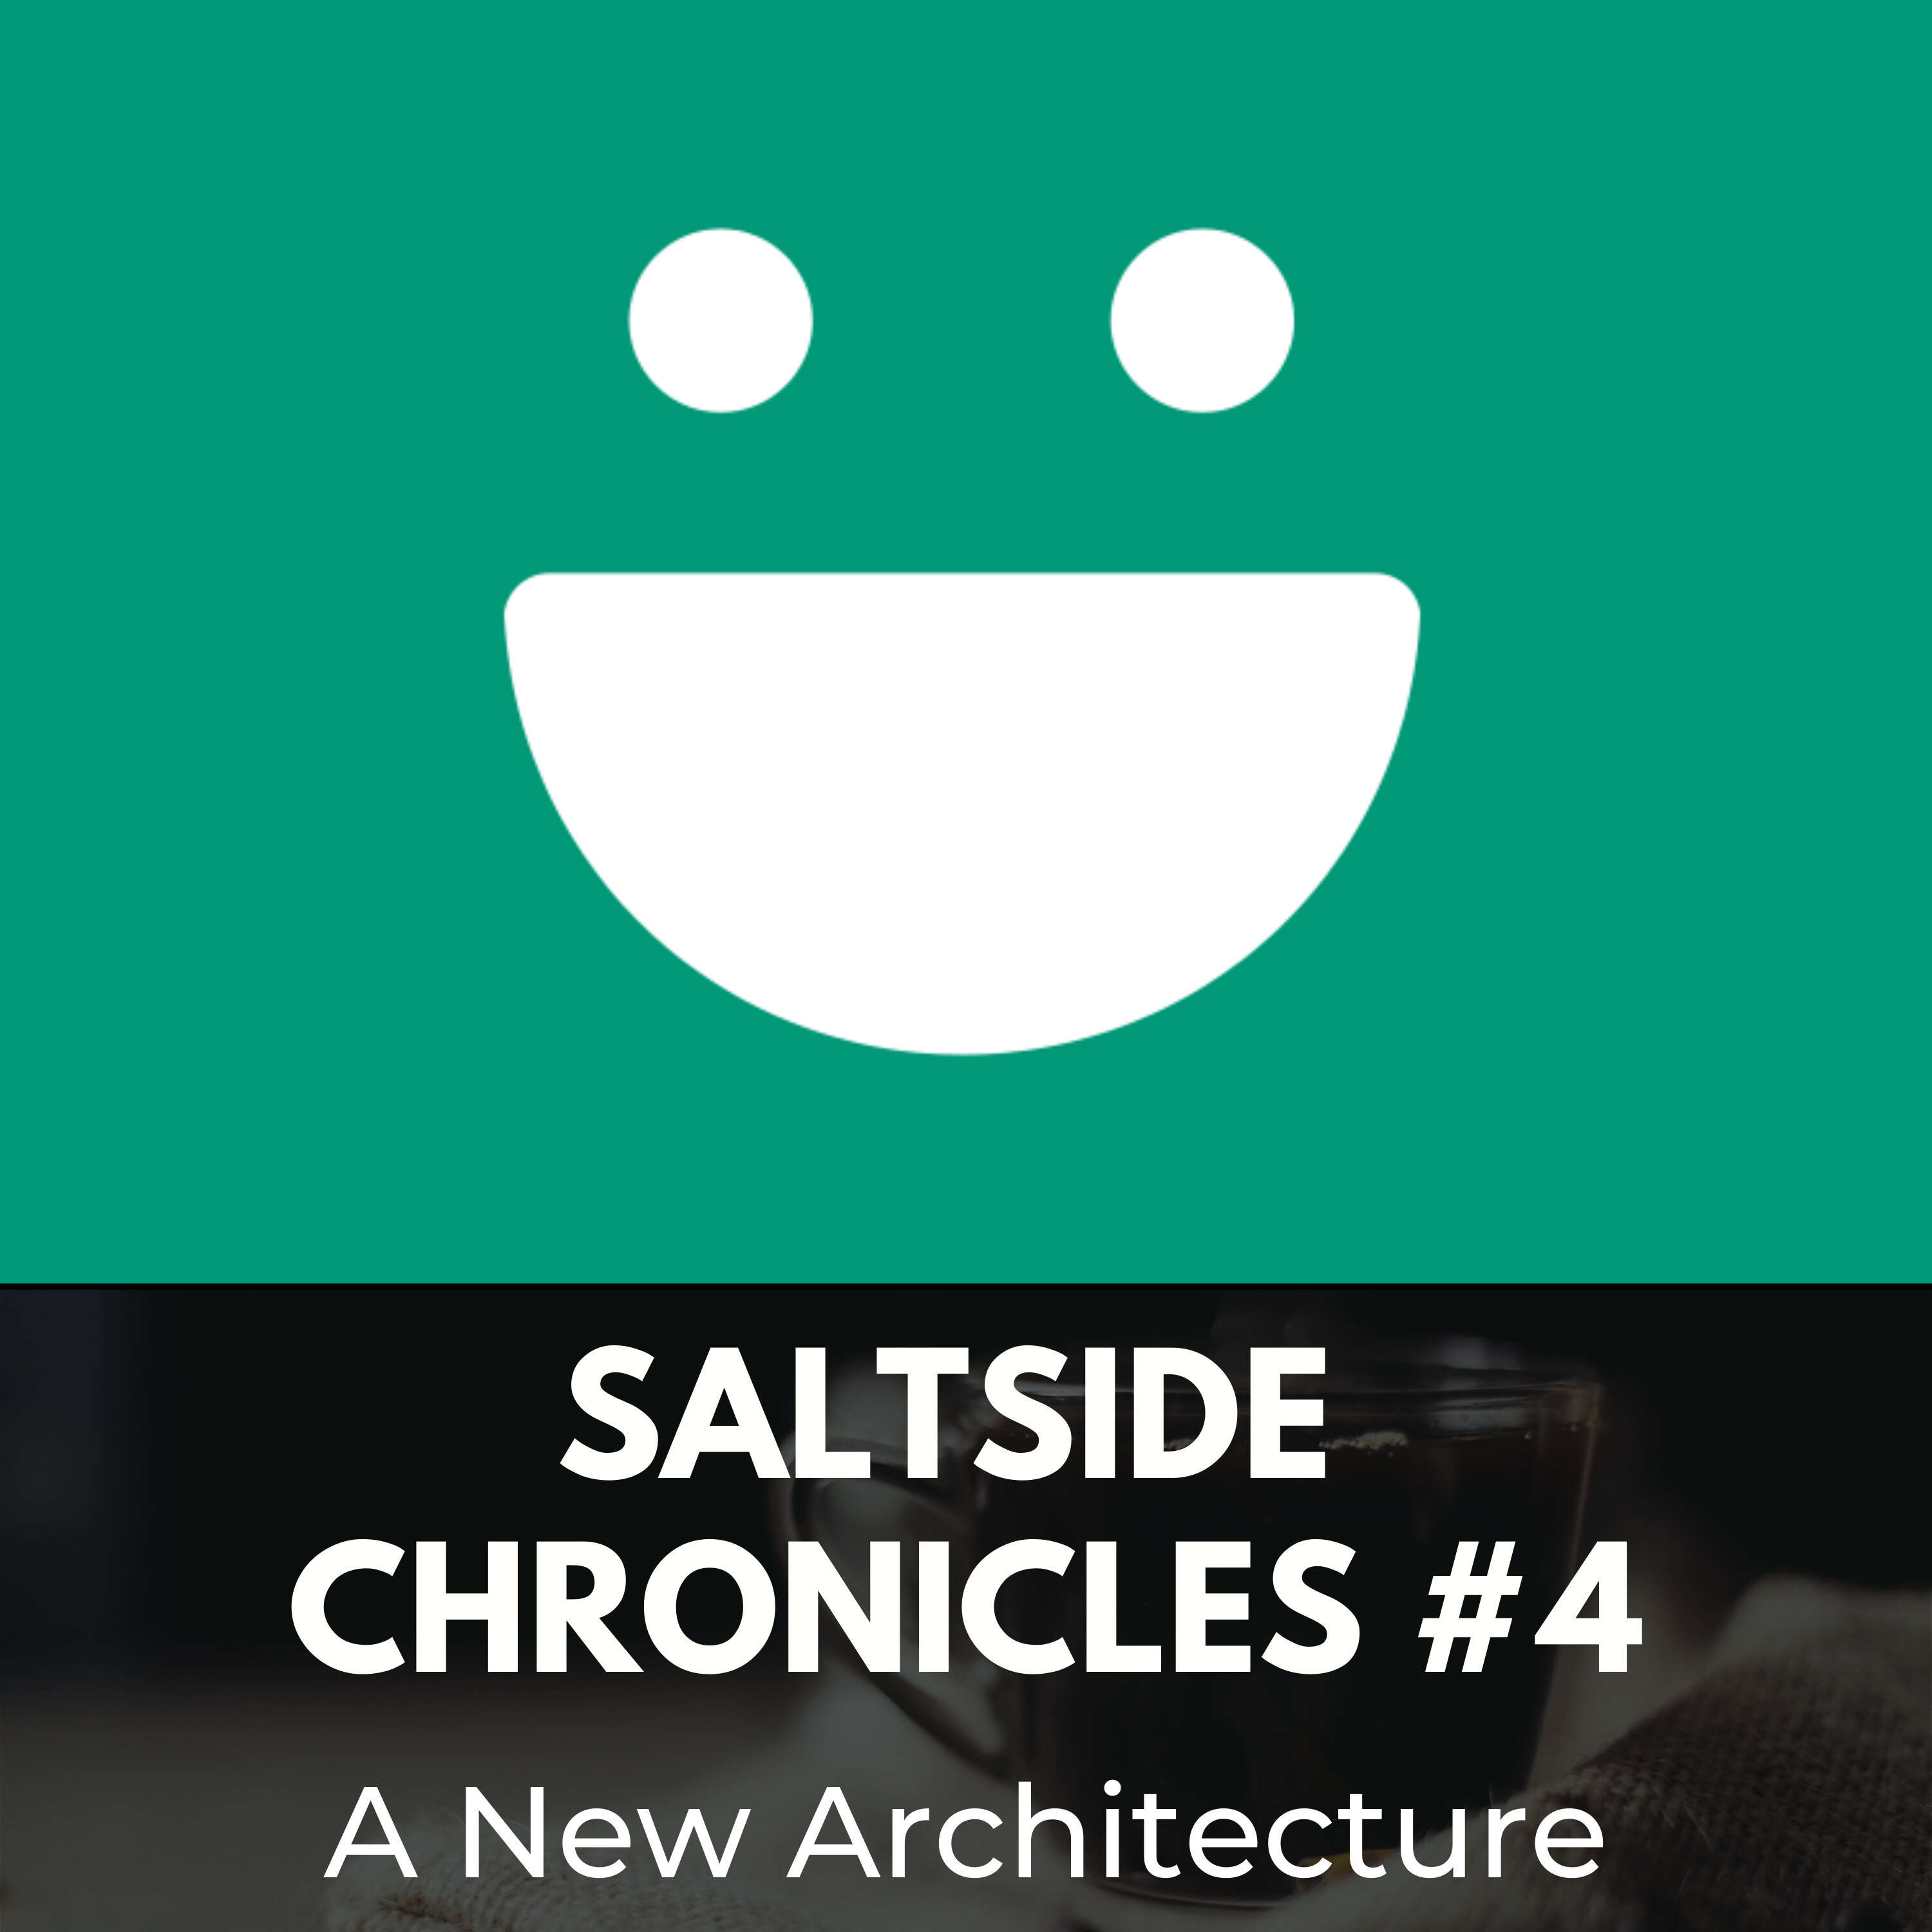 Saltside Chronicles #4: A New Architecture